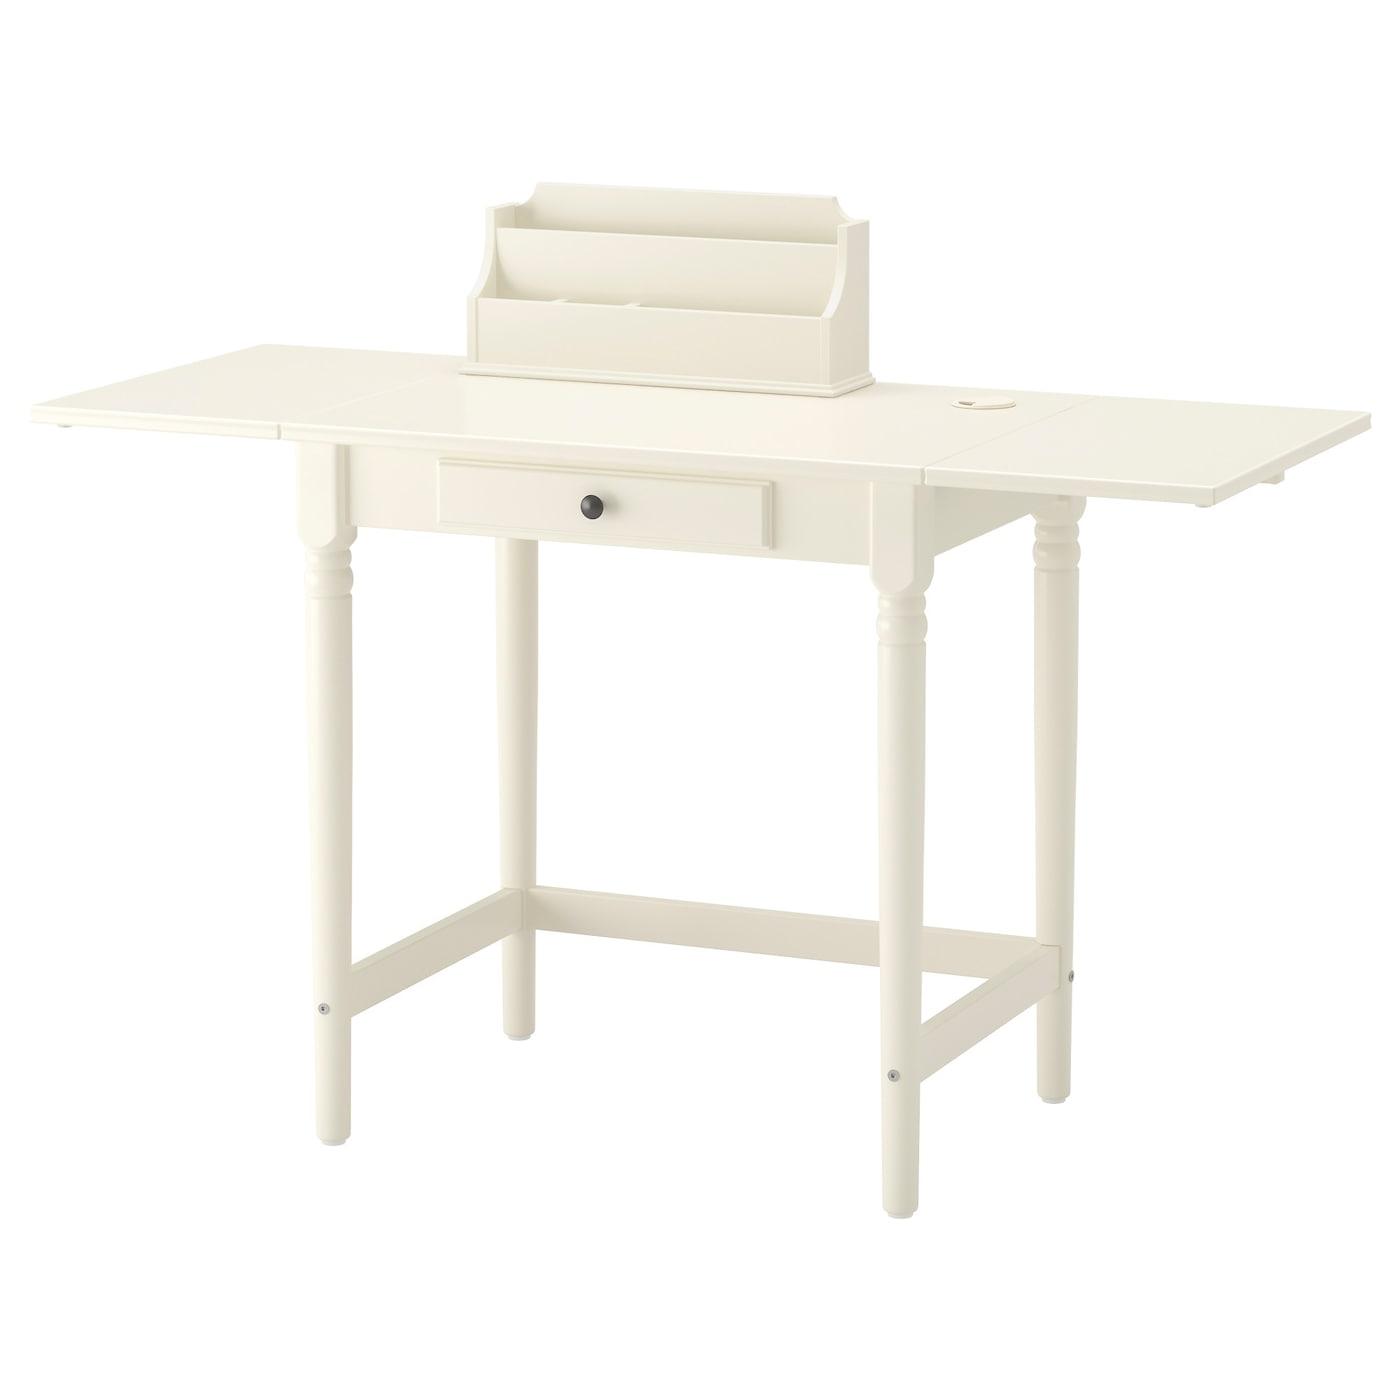 IKEA INGATORP table The add-on unit can be placed on the table top or hung on a wall.